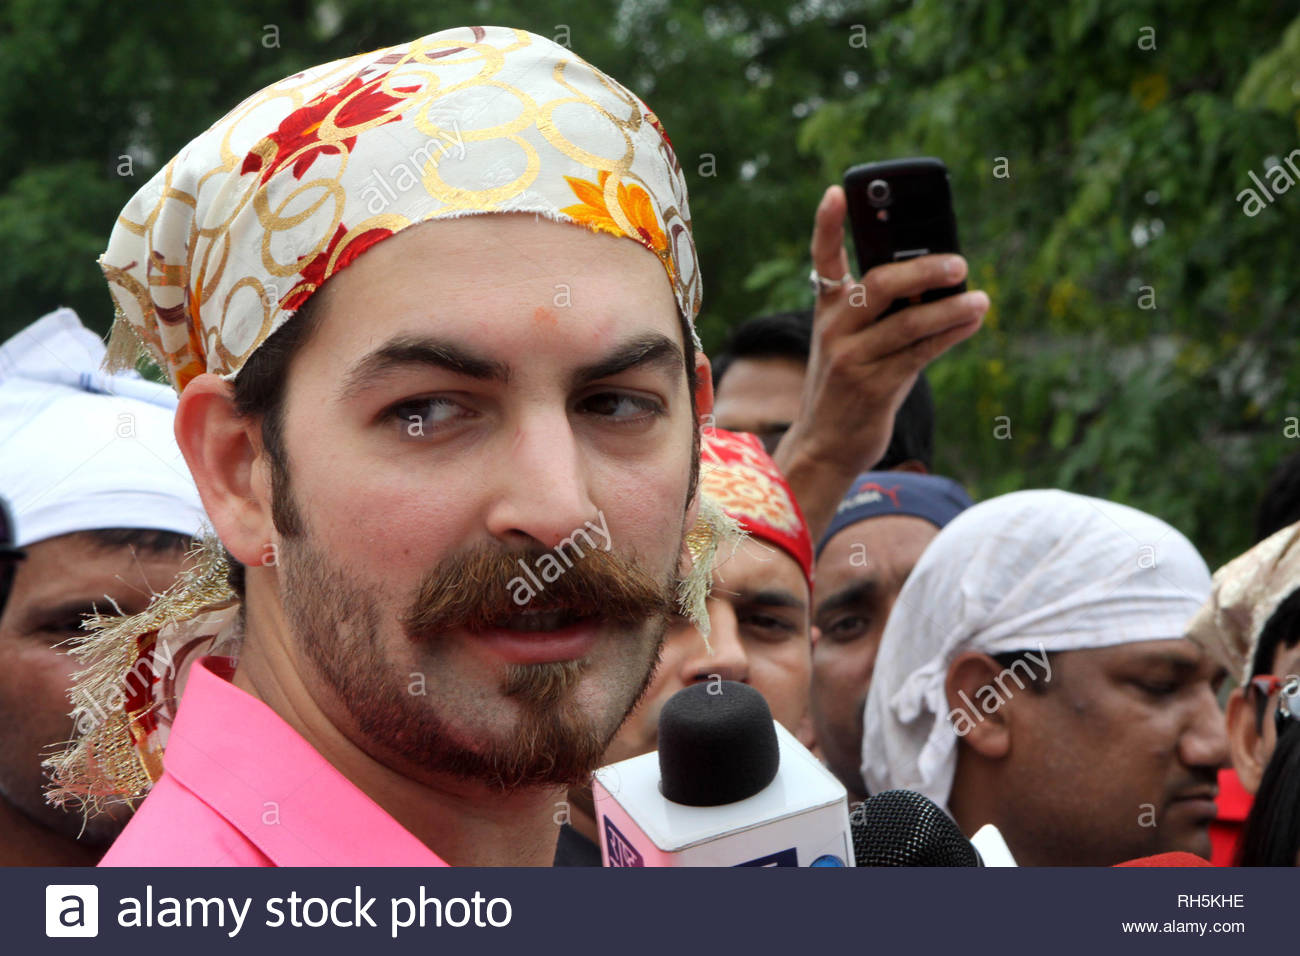 Bollywood actor Neil Nitin Mukesh speaks to the media after offering prayer at the Bangla Saheb Gurudwara for the success of his latest movie Shortcut Romeo, in New Delhi, India on June 18, 2013. Shortcut Romeo, scheduled for release on June 21, is a romantic crime thriller produced by Susi Ganeshan which is a Hindi remake of the filmmakerÕs own Tamil film Thiruttu Payale, starring Neil Nitin Mukesh, Puja Gupta and Ameesha Patel. The film was screened at Marche du Film at Cannes Film Festival in May 2013. (Imtiyaz Khan) - Stock Image